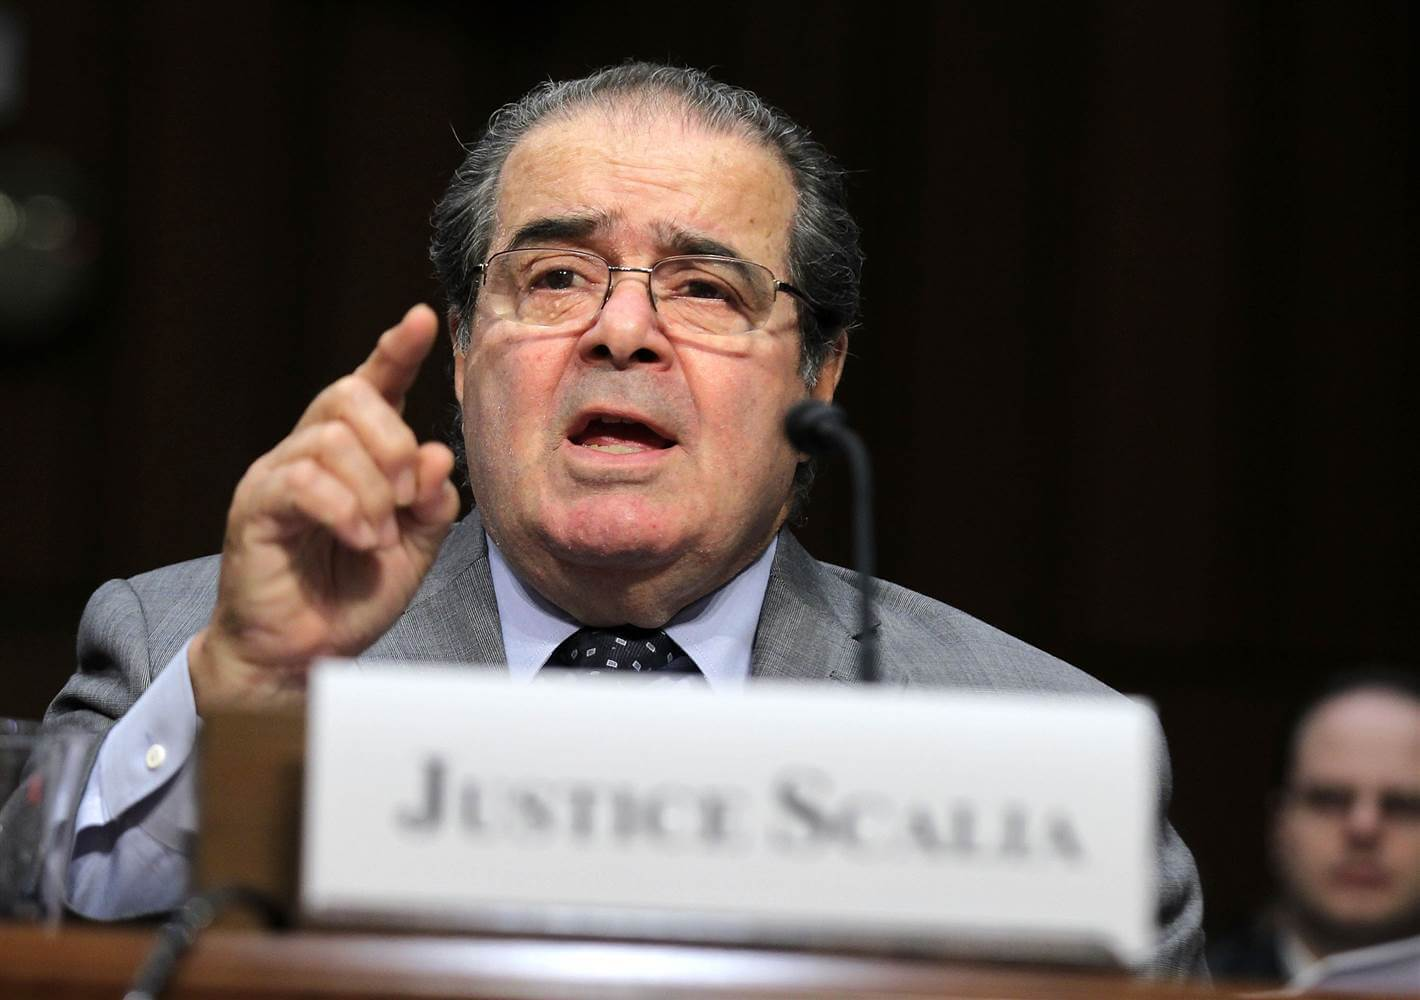 Supreme Court Justice Antonin Scalia, died Saturday at 79. Now his empty seat on the court is favored to go to a liberal.